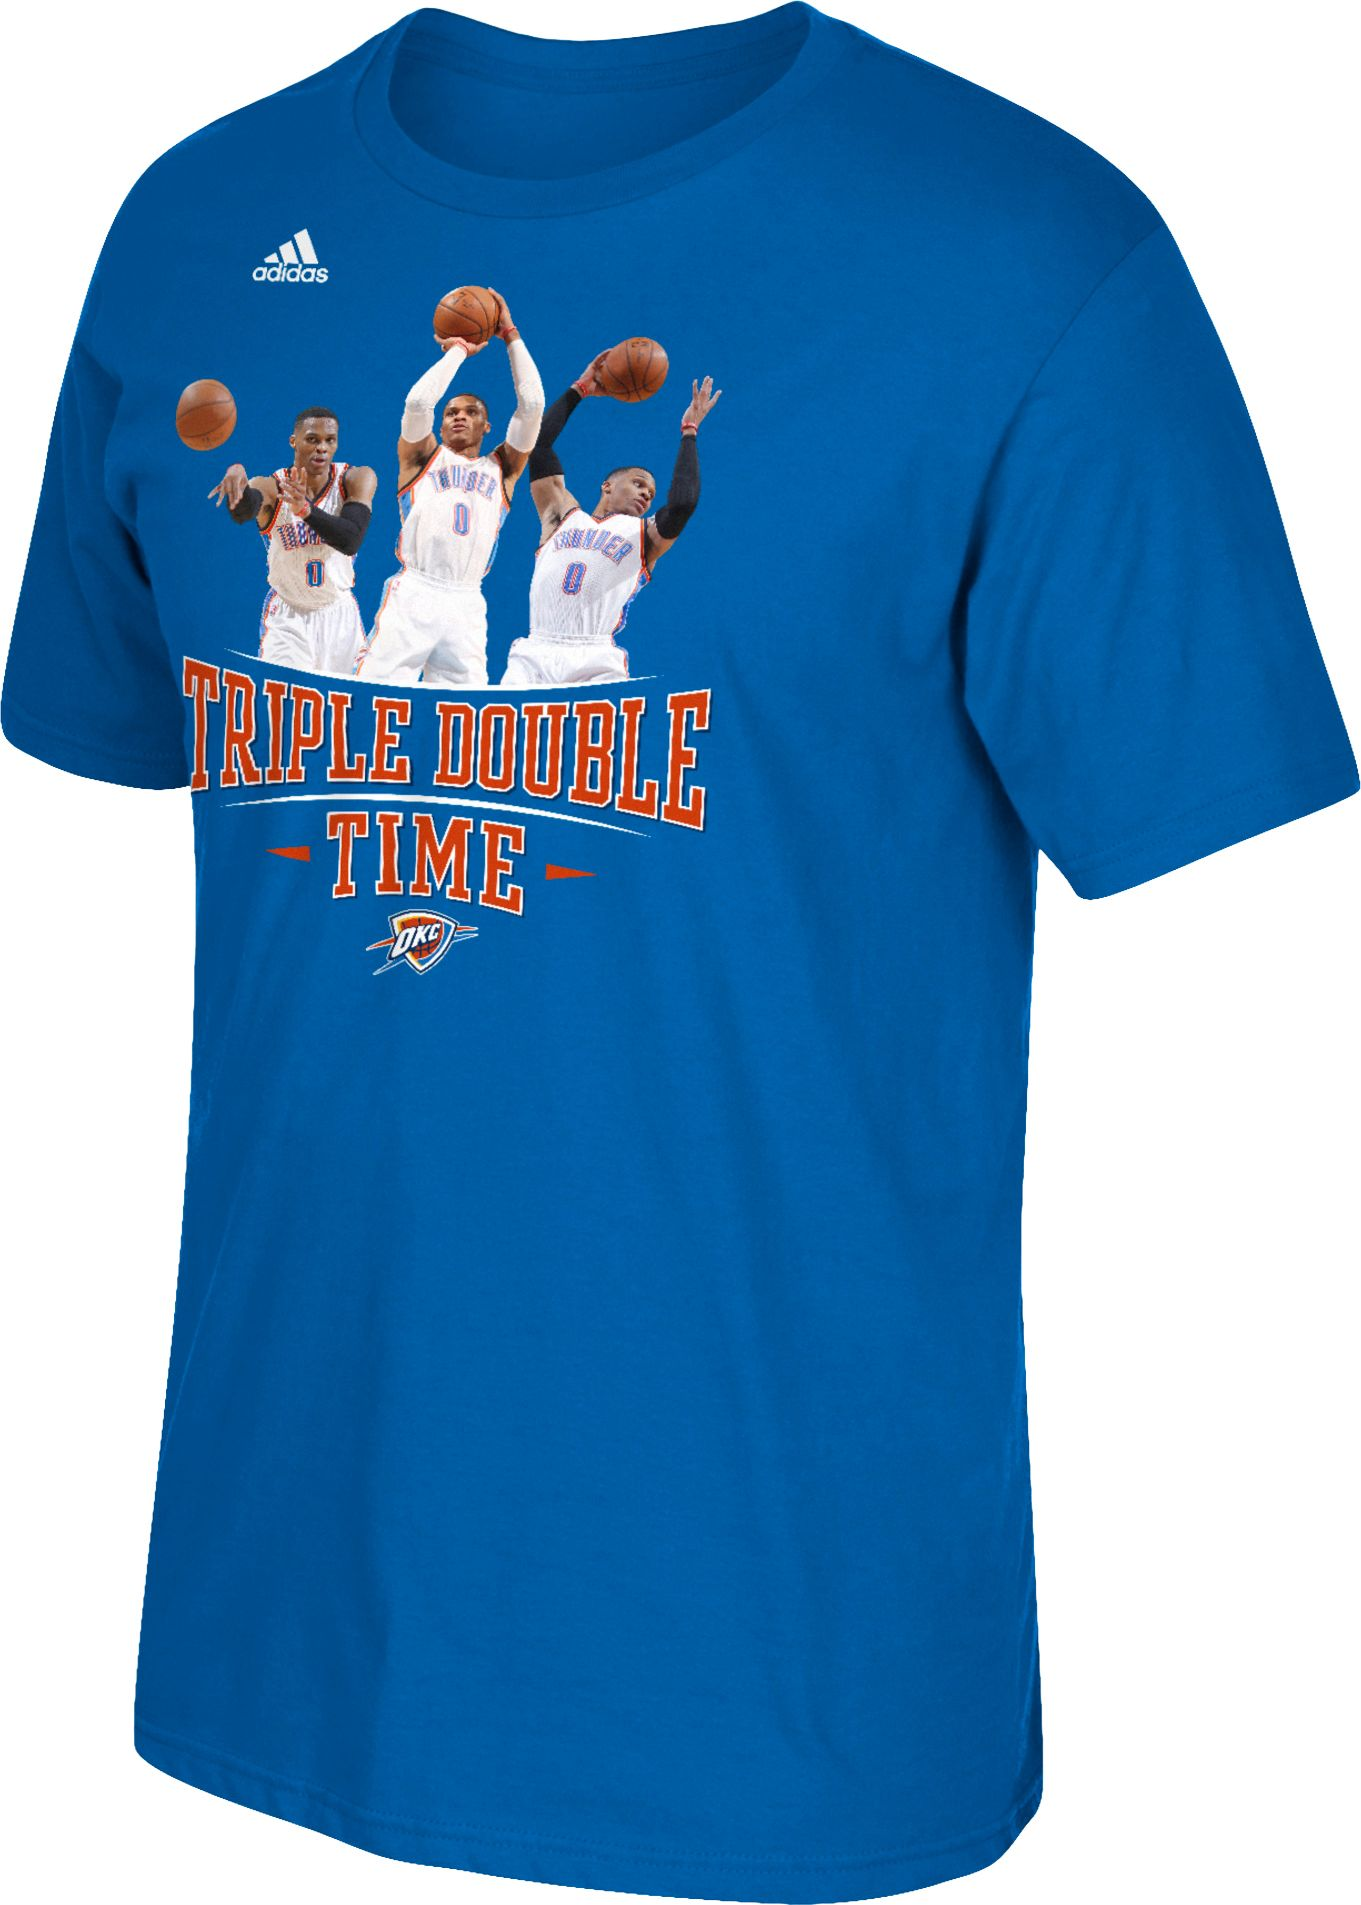 Product Image   adidas Men s Oklahoma City Thunder Russell Westbrook   Triple Double Time  Blue T Shirt. Oklahoma City Thunder NBA Men s Apparel   DICK S Sporting Goods